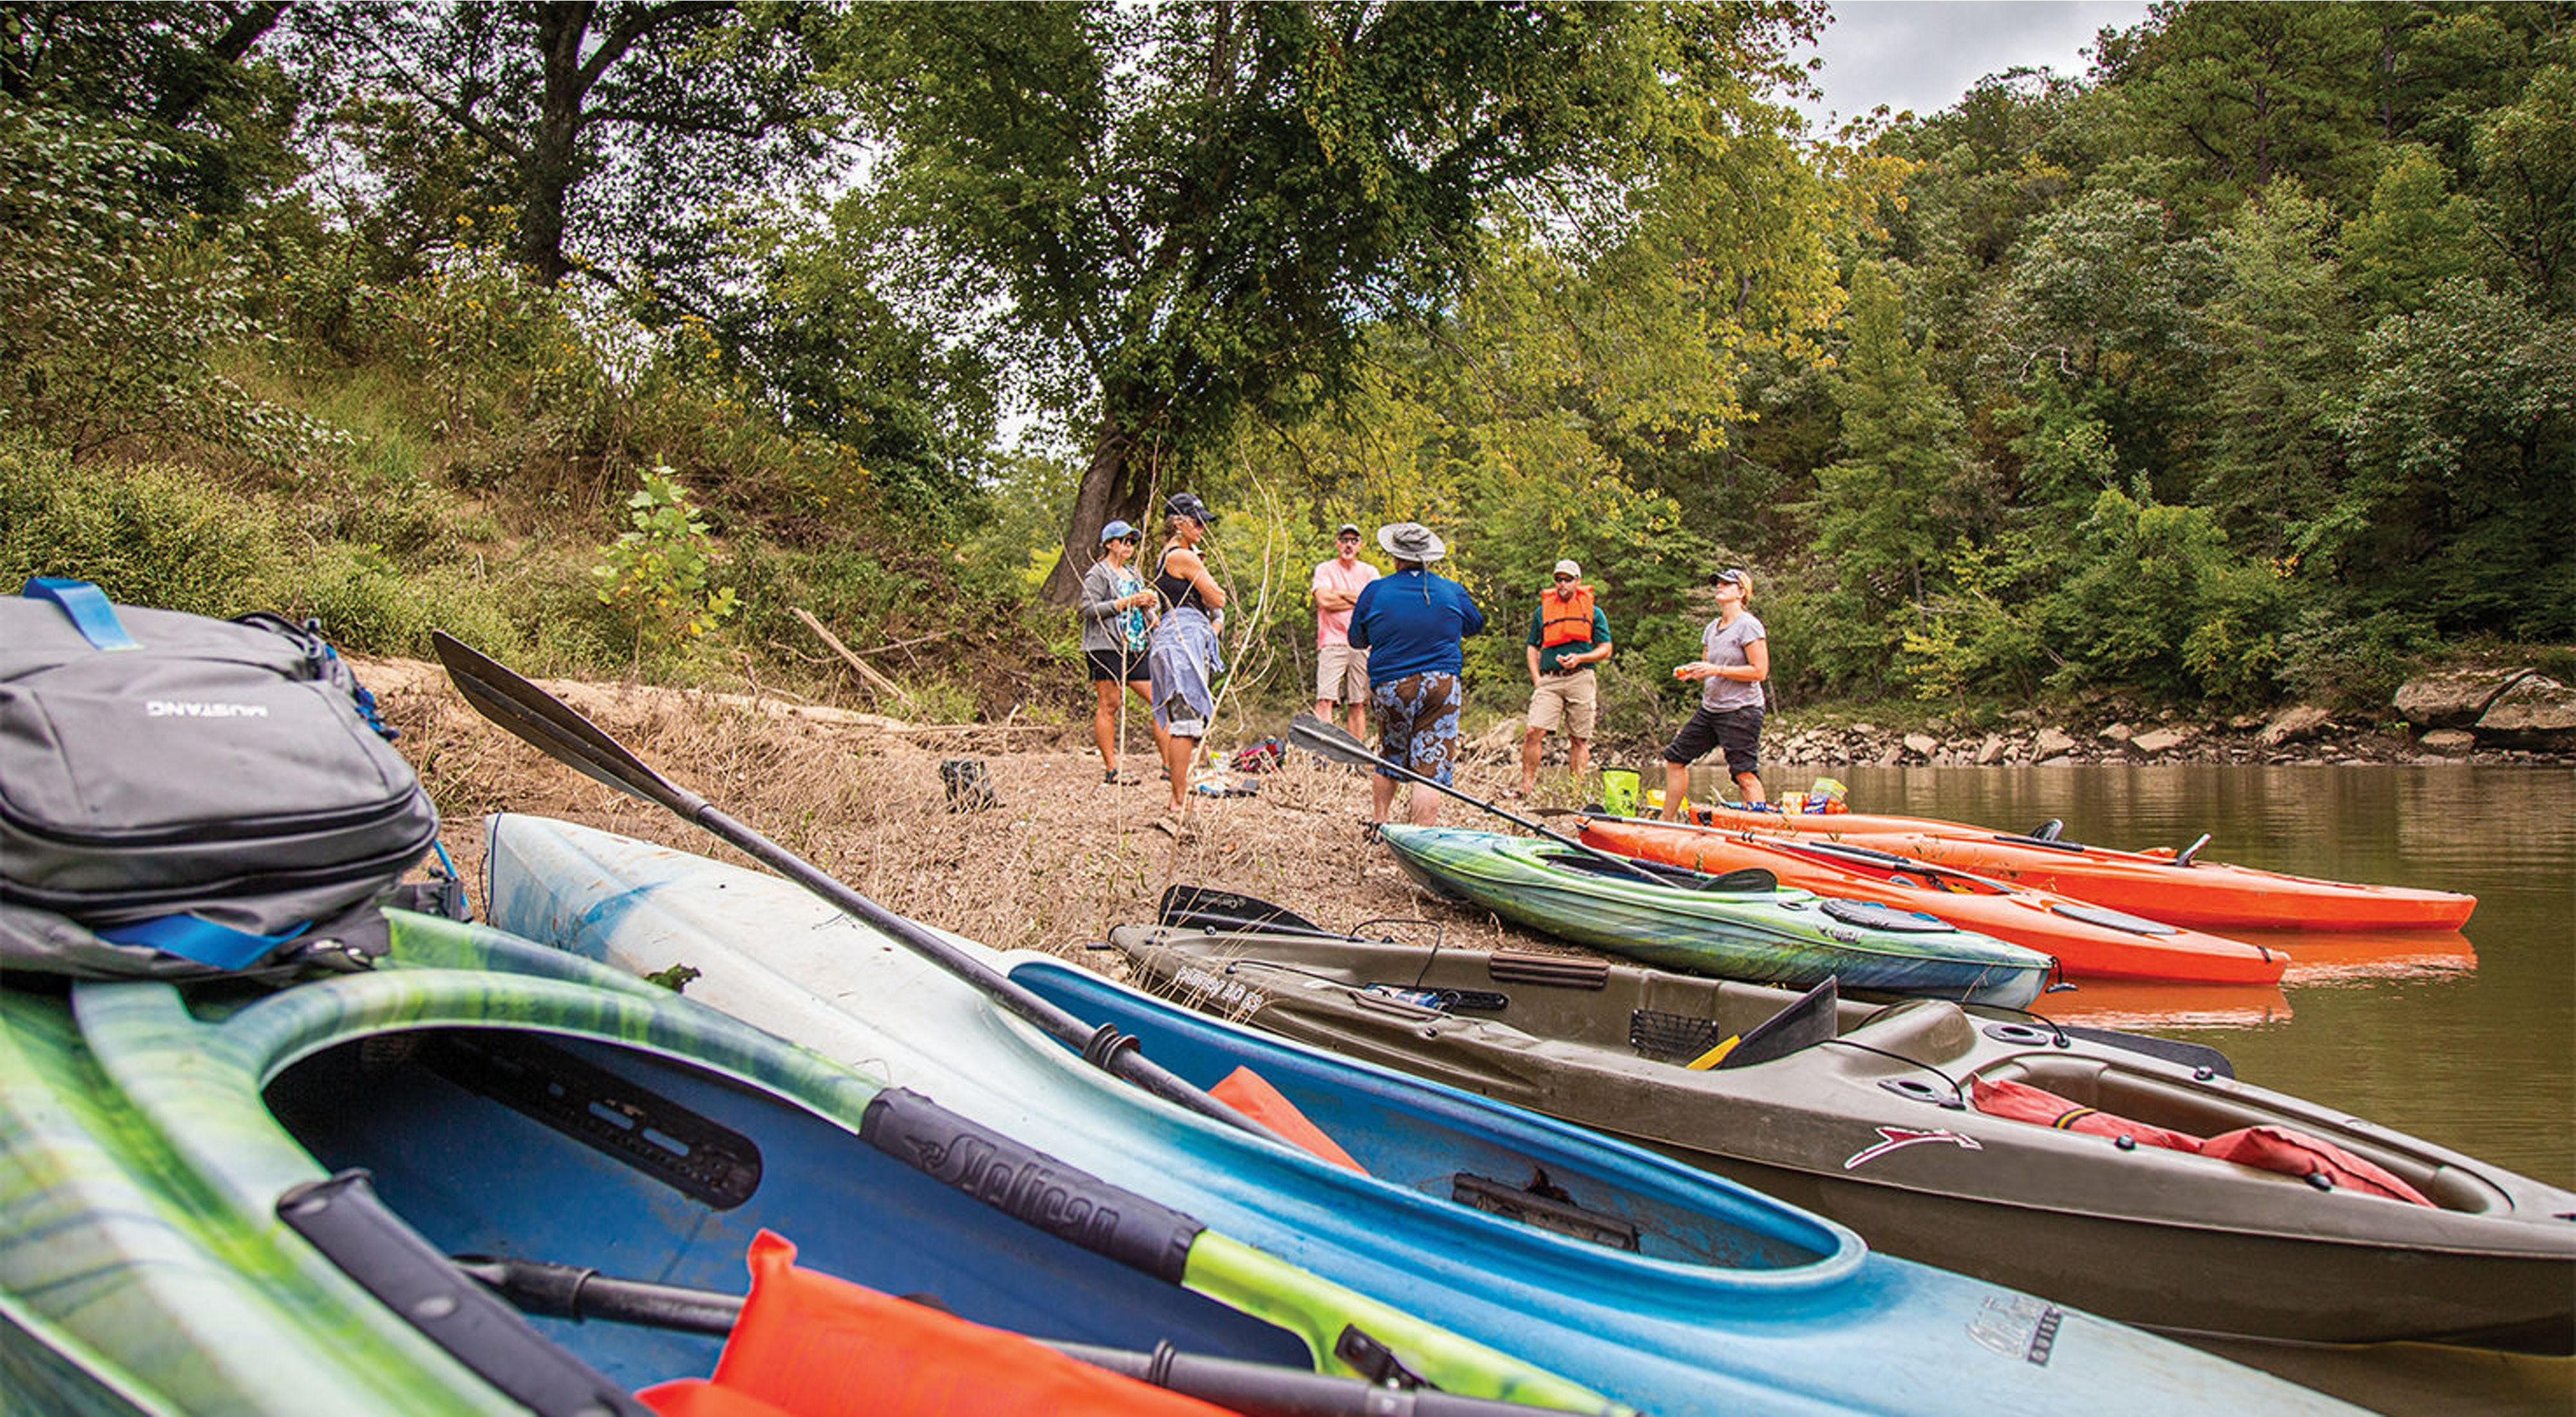 A group of people standing on a sandbar in front of a row of colorful kayaks on the Kiamichi River.